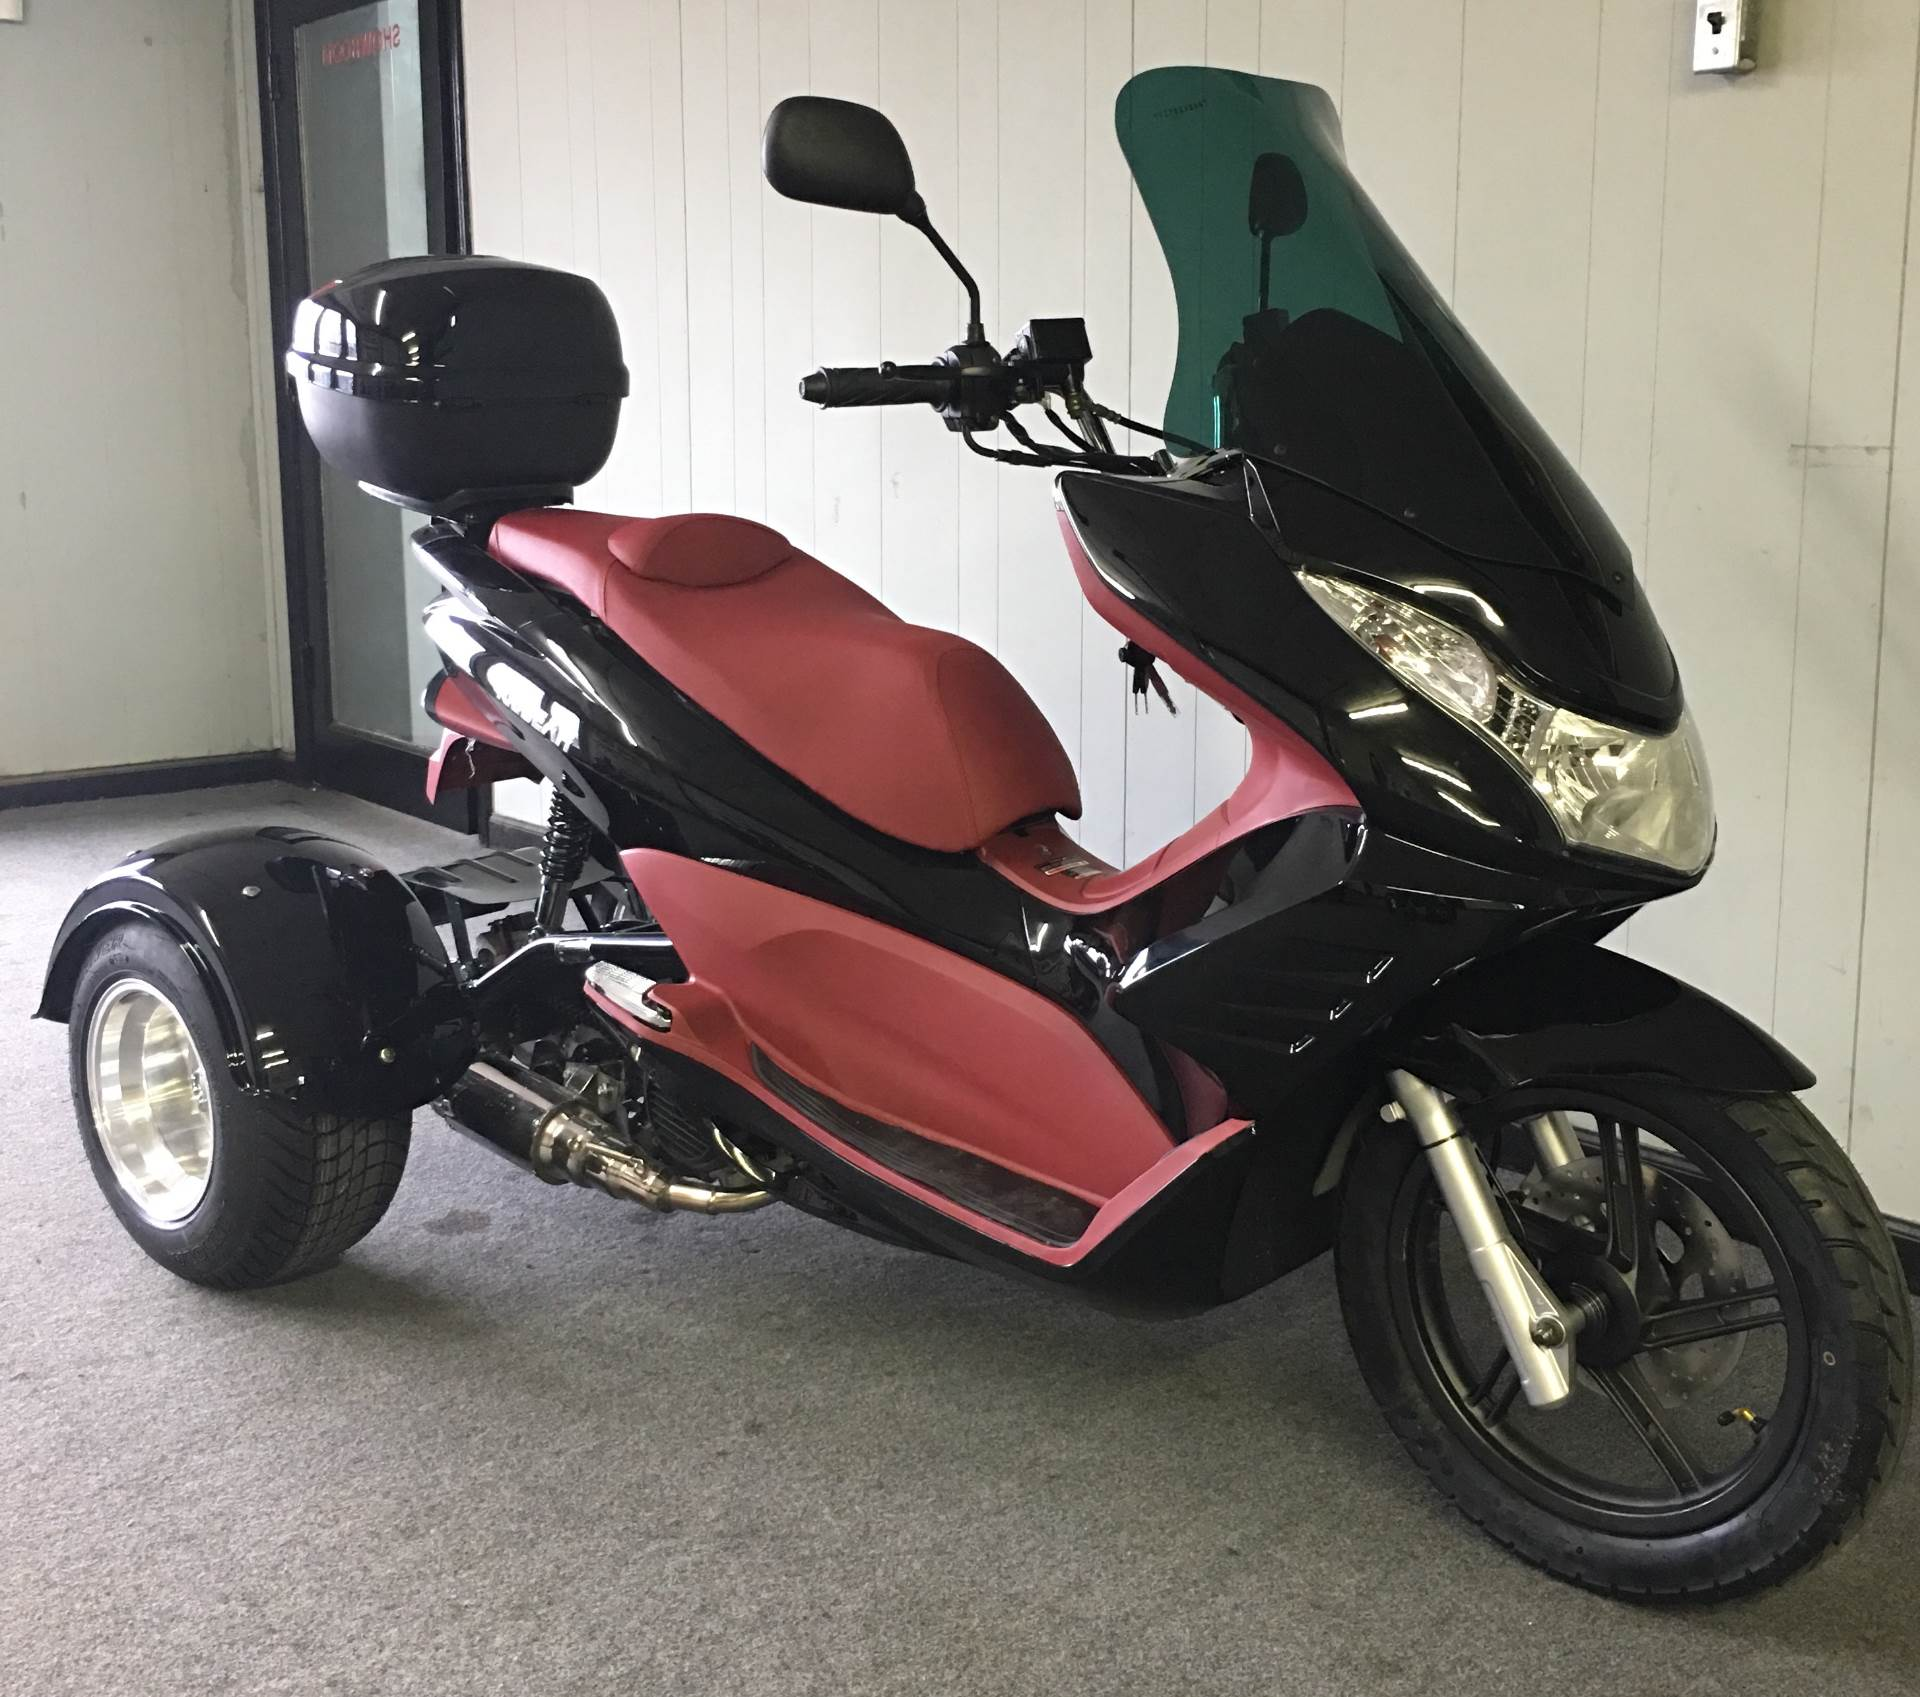 2017 Other Scooter Trike 150 in Tulsa, Oklahoma